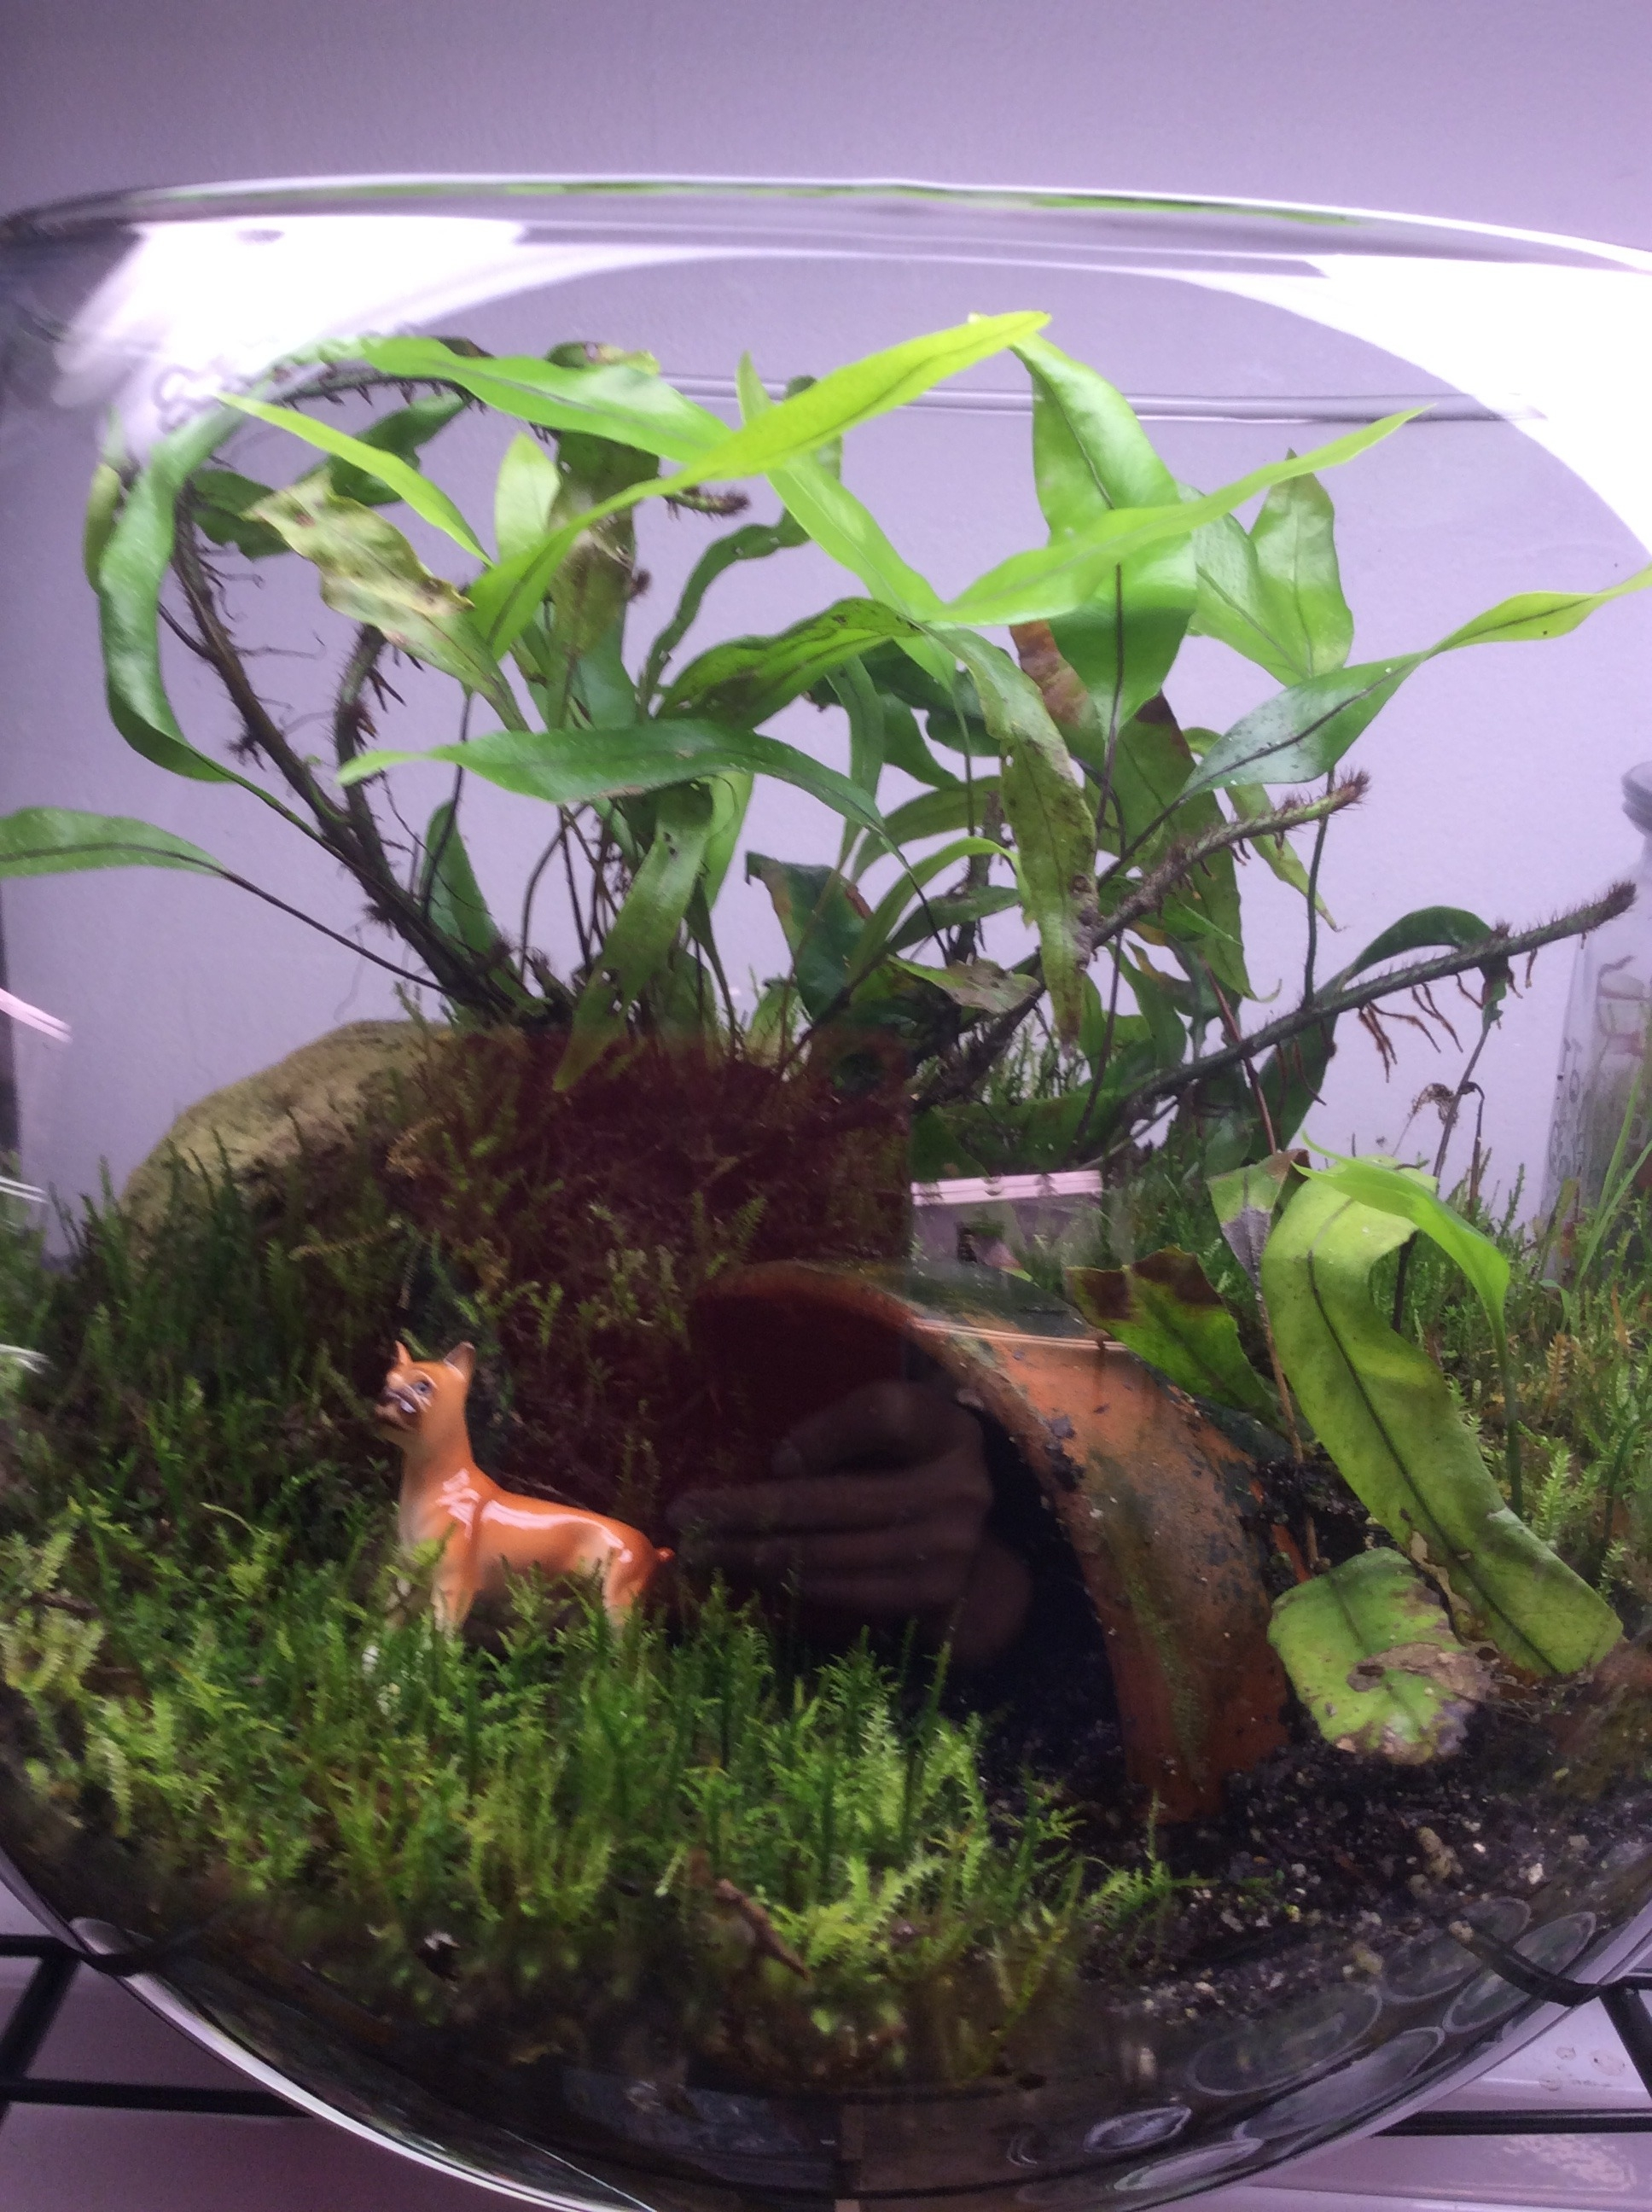 Terrarium Building Workshop June 2- Sign Up NOW